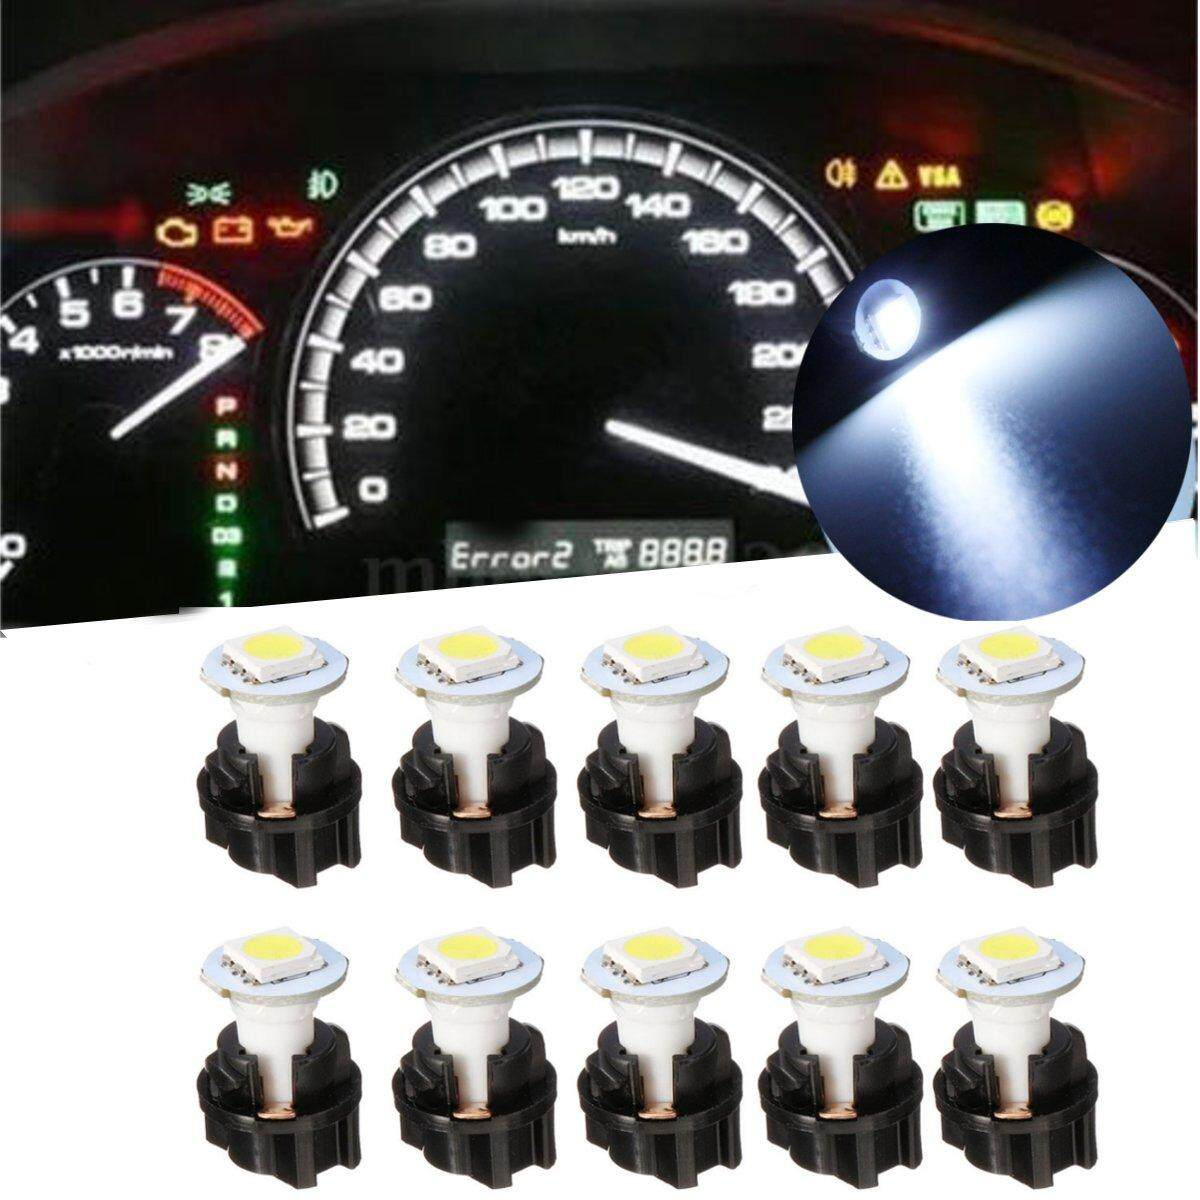 Buy Sell Cheapest Mhs 10 Pc74 Best Quality Product Deals Lampu Led Speedometer T5 Putih Pcs Memutar Soket Panel Instrumen Cluster Dash Ringan Bohlam